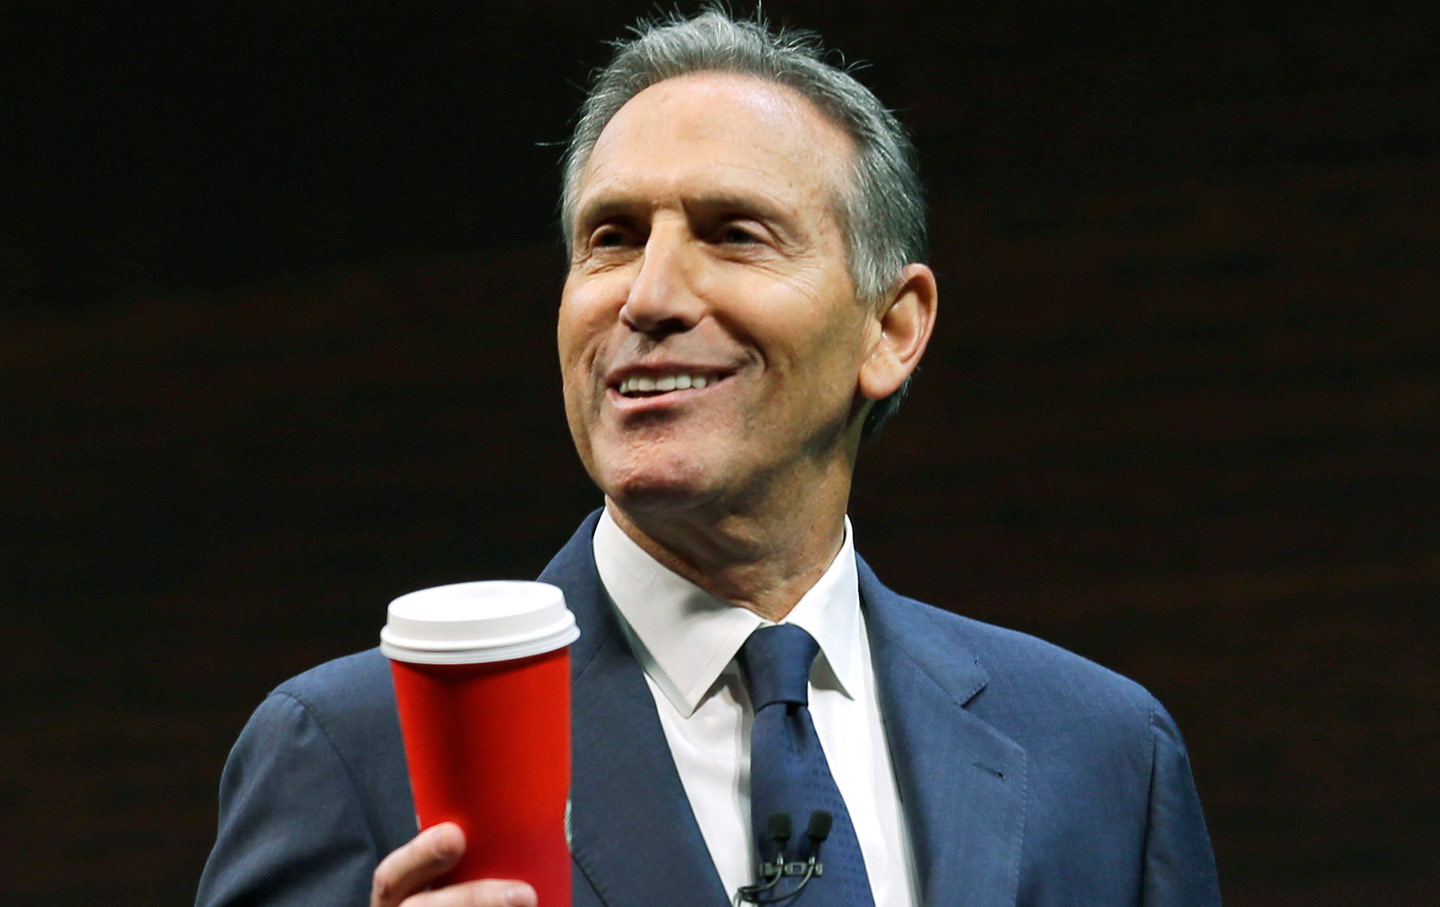 Howard Schultz is the coffee man.